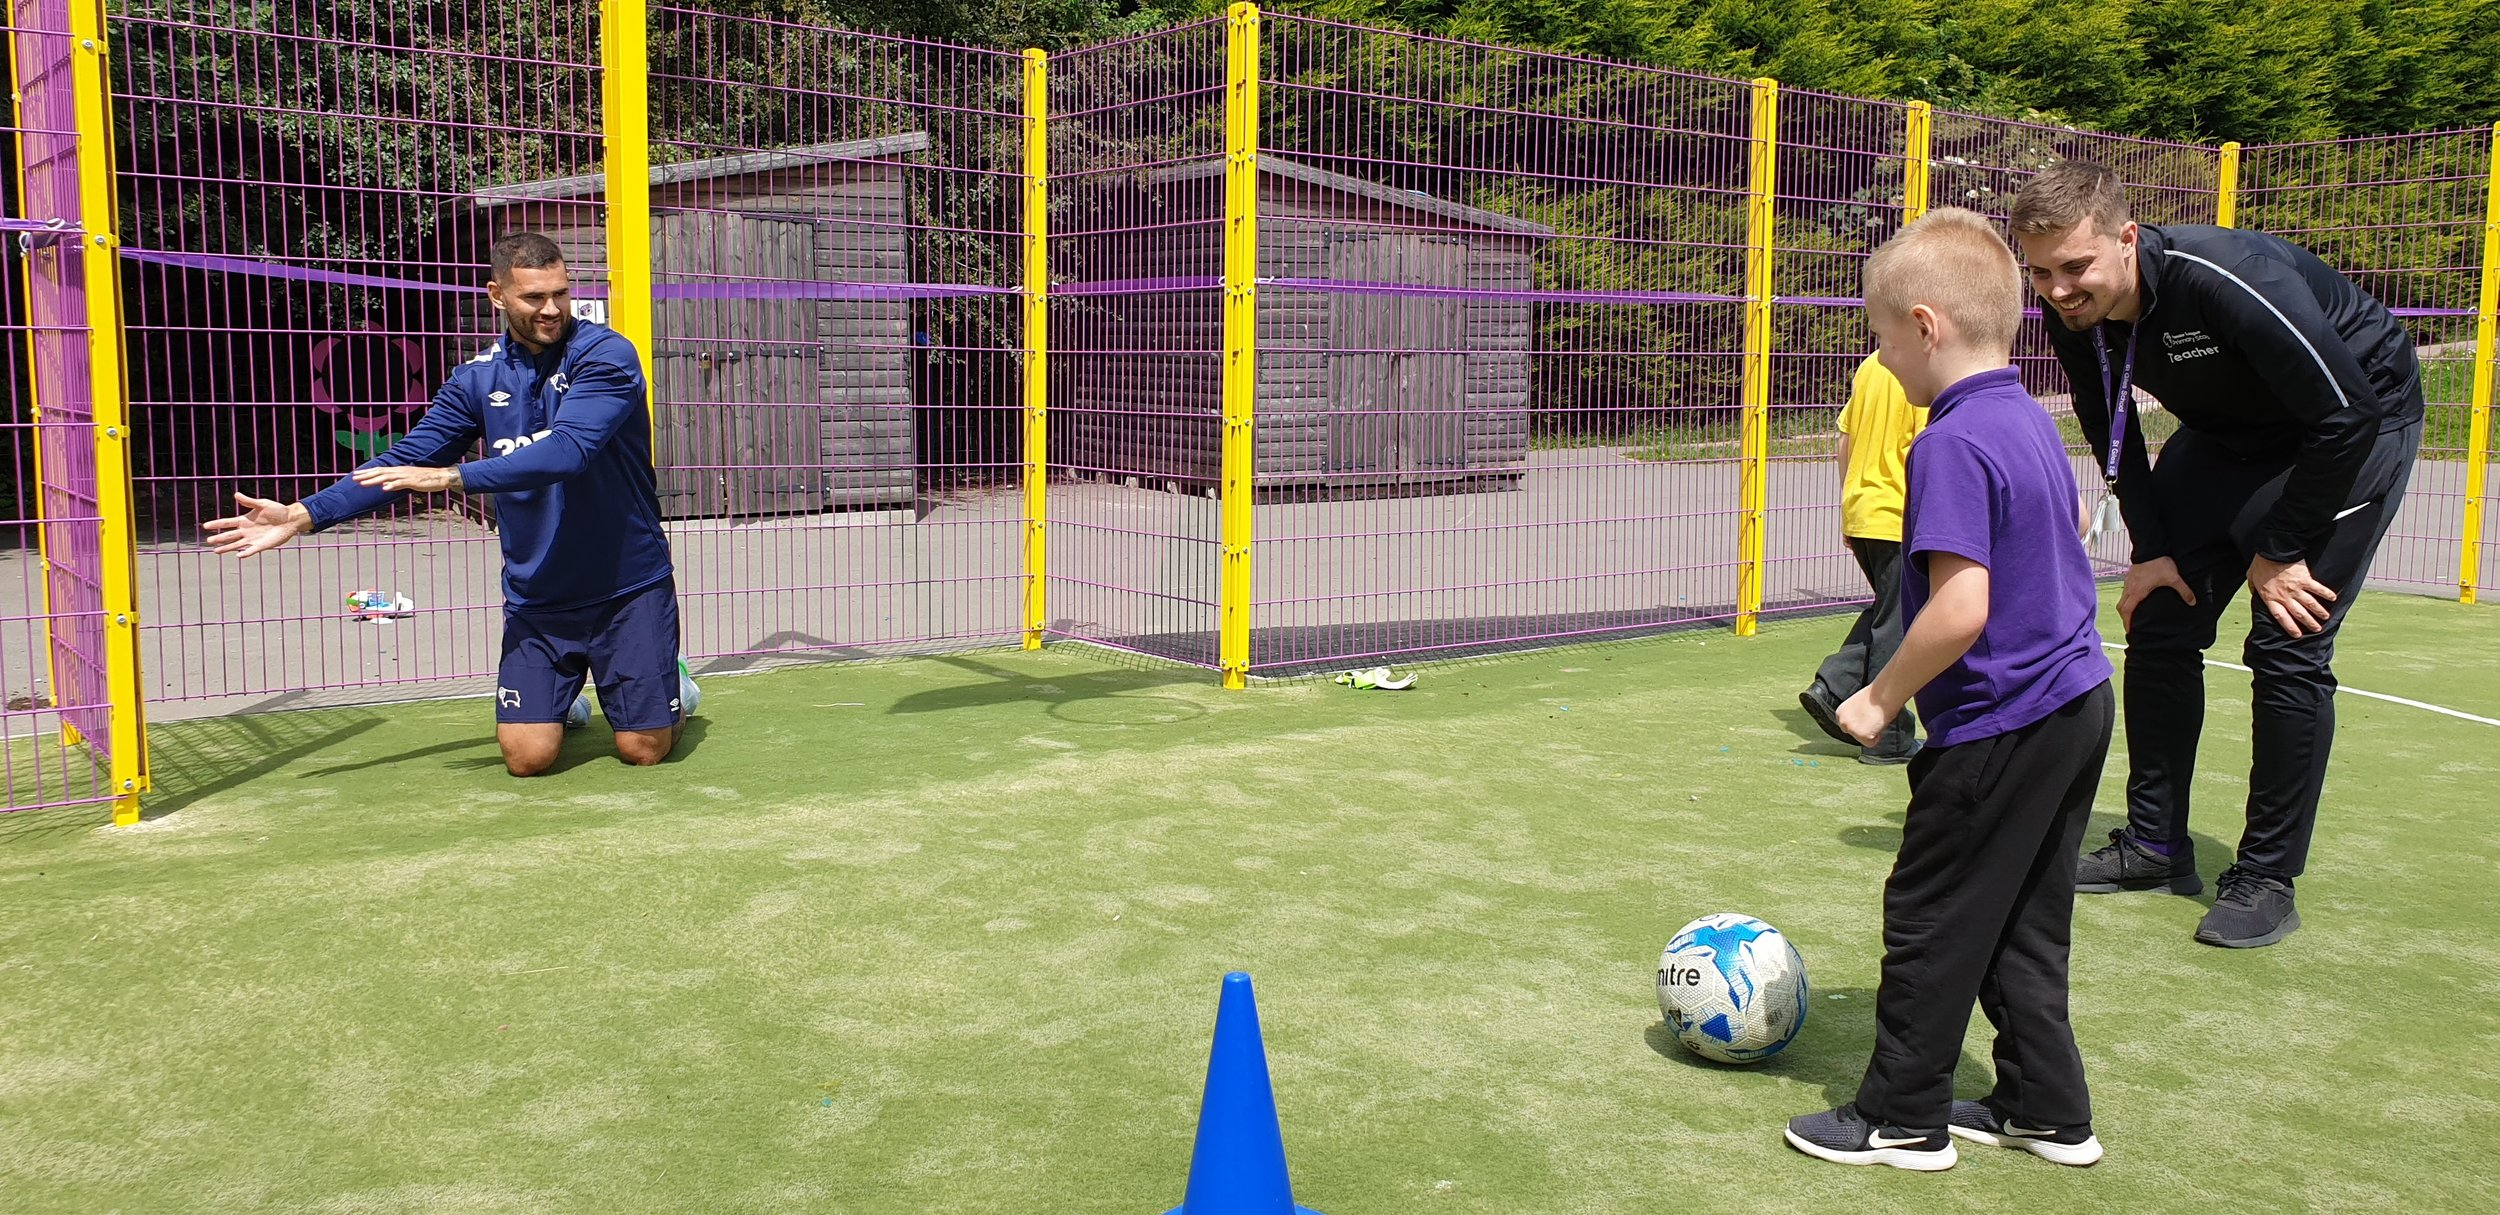 Derby County man Bradley Johnson at the official opening of the brand-new MUGA at St Giles School. The Derby County man raised £30,000 for the project.